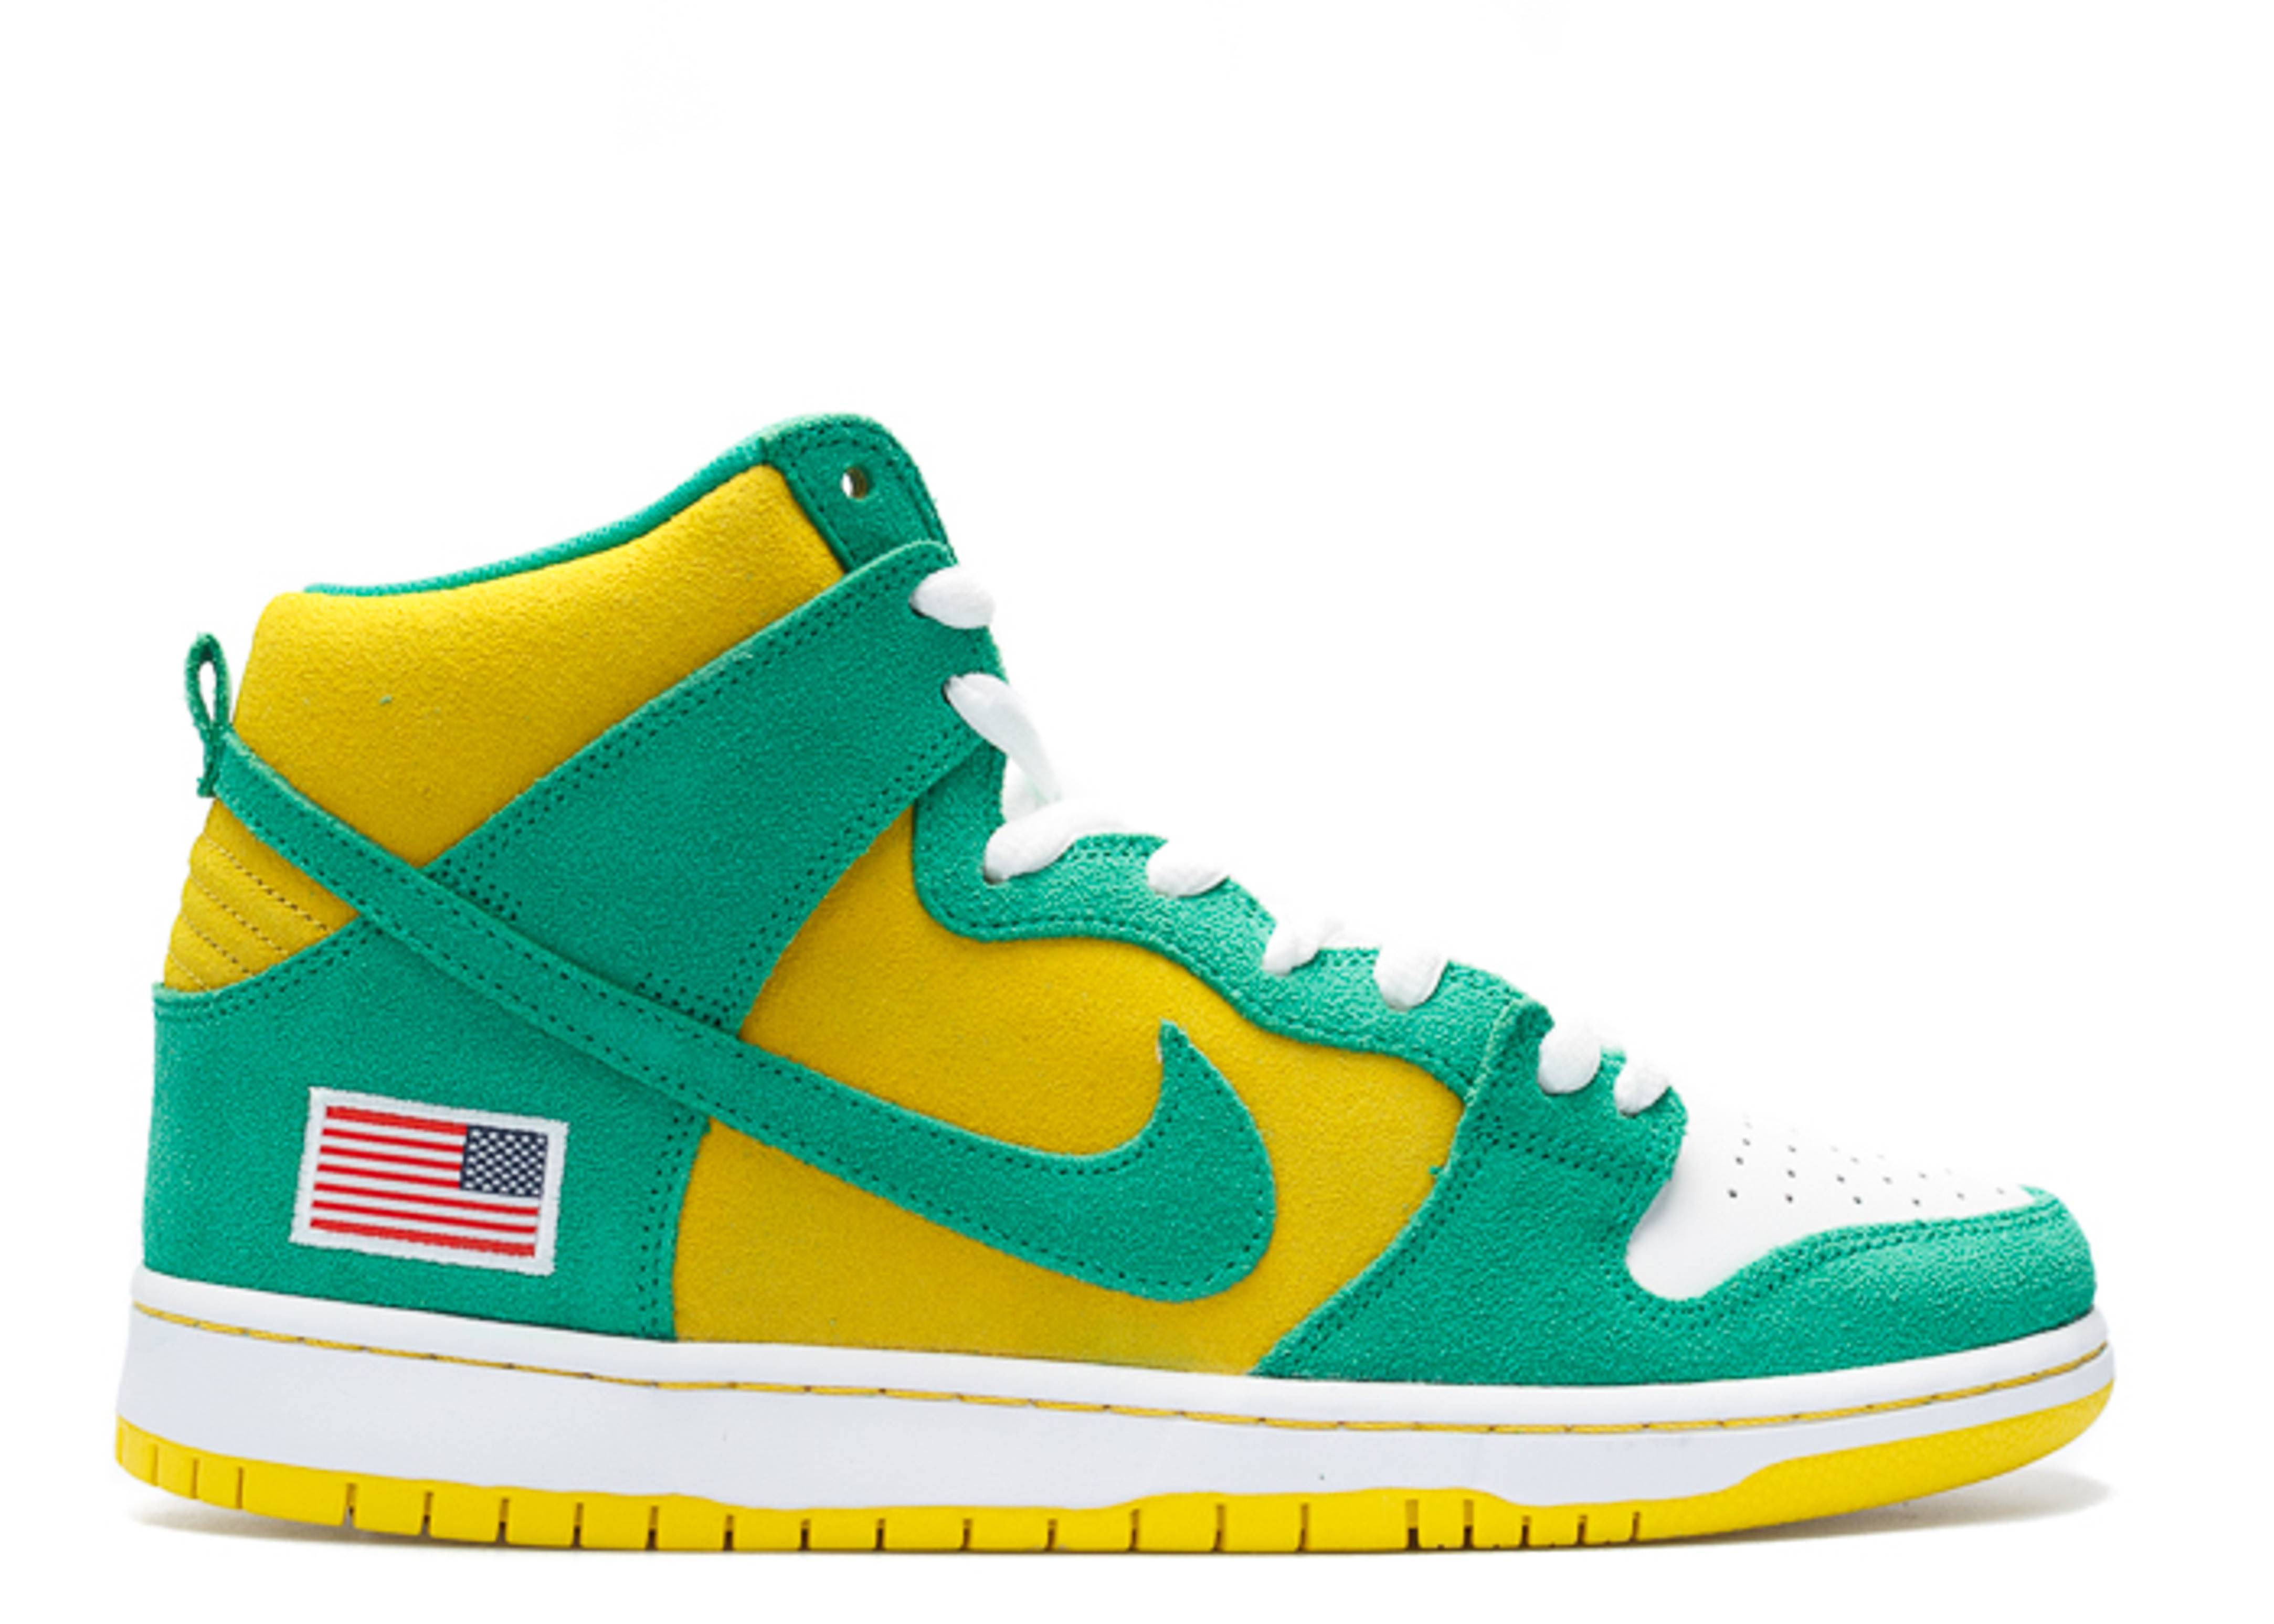 dunk high pro sb oakland athletics nike 305050 337. Black Bedroom Furniture Sets. Home Design Ideas